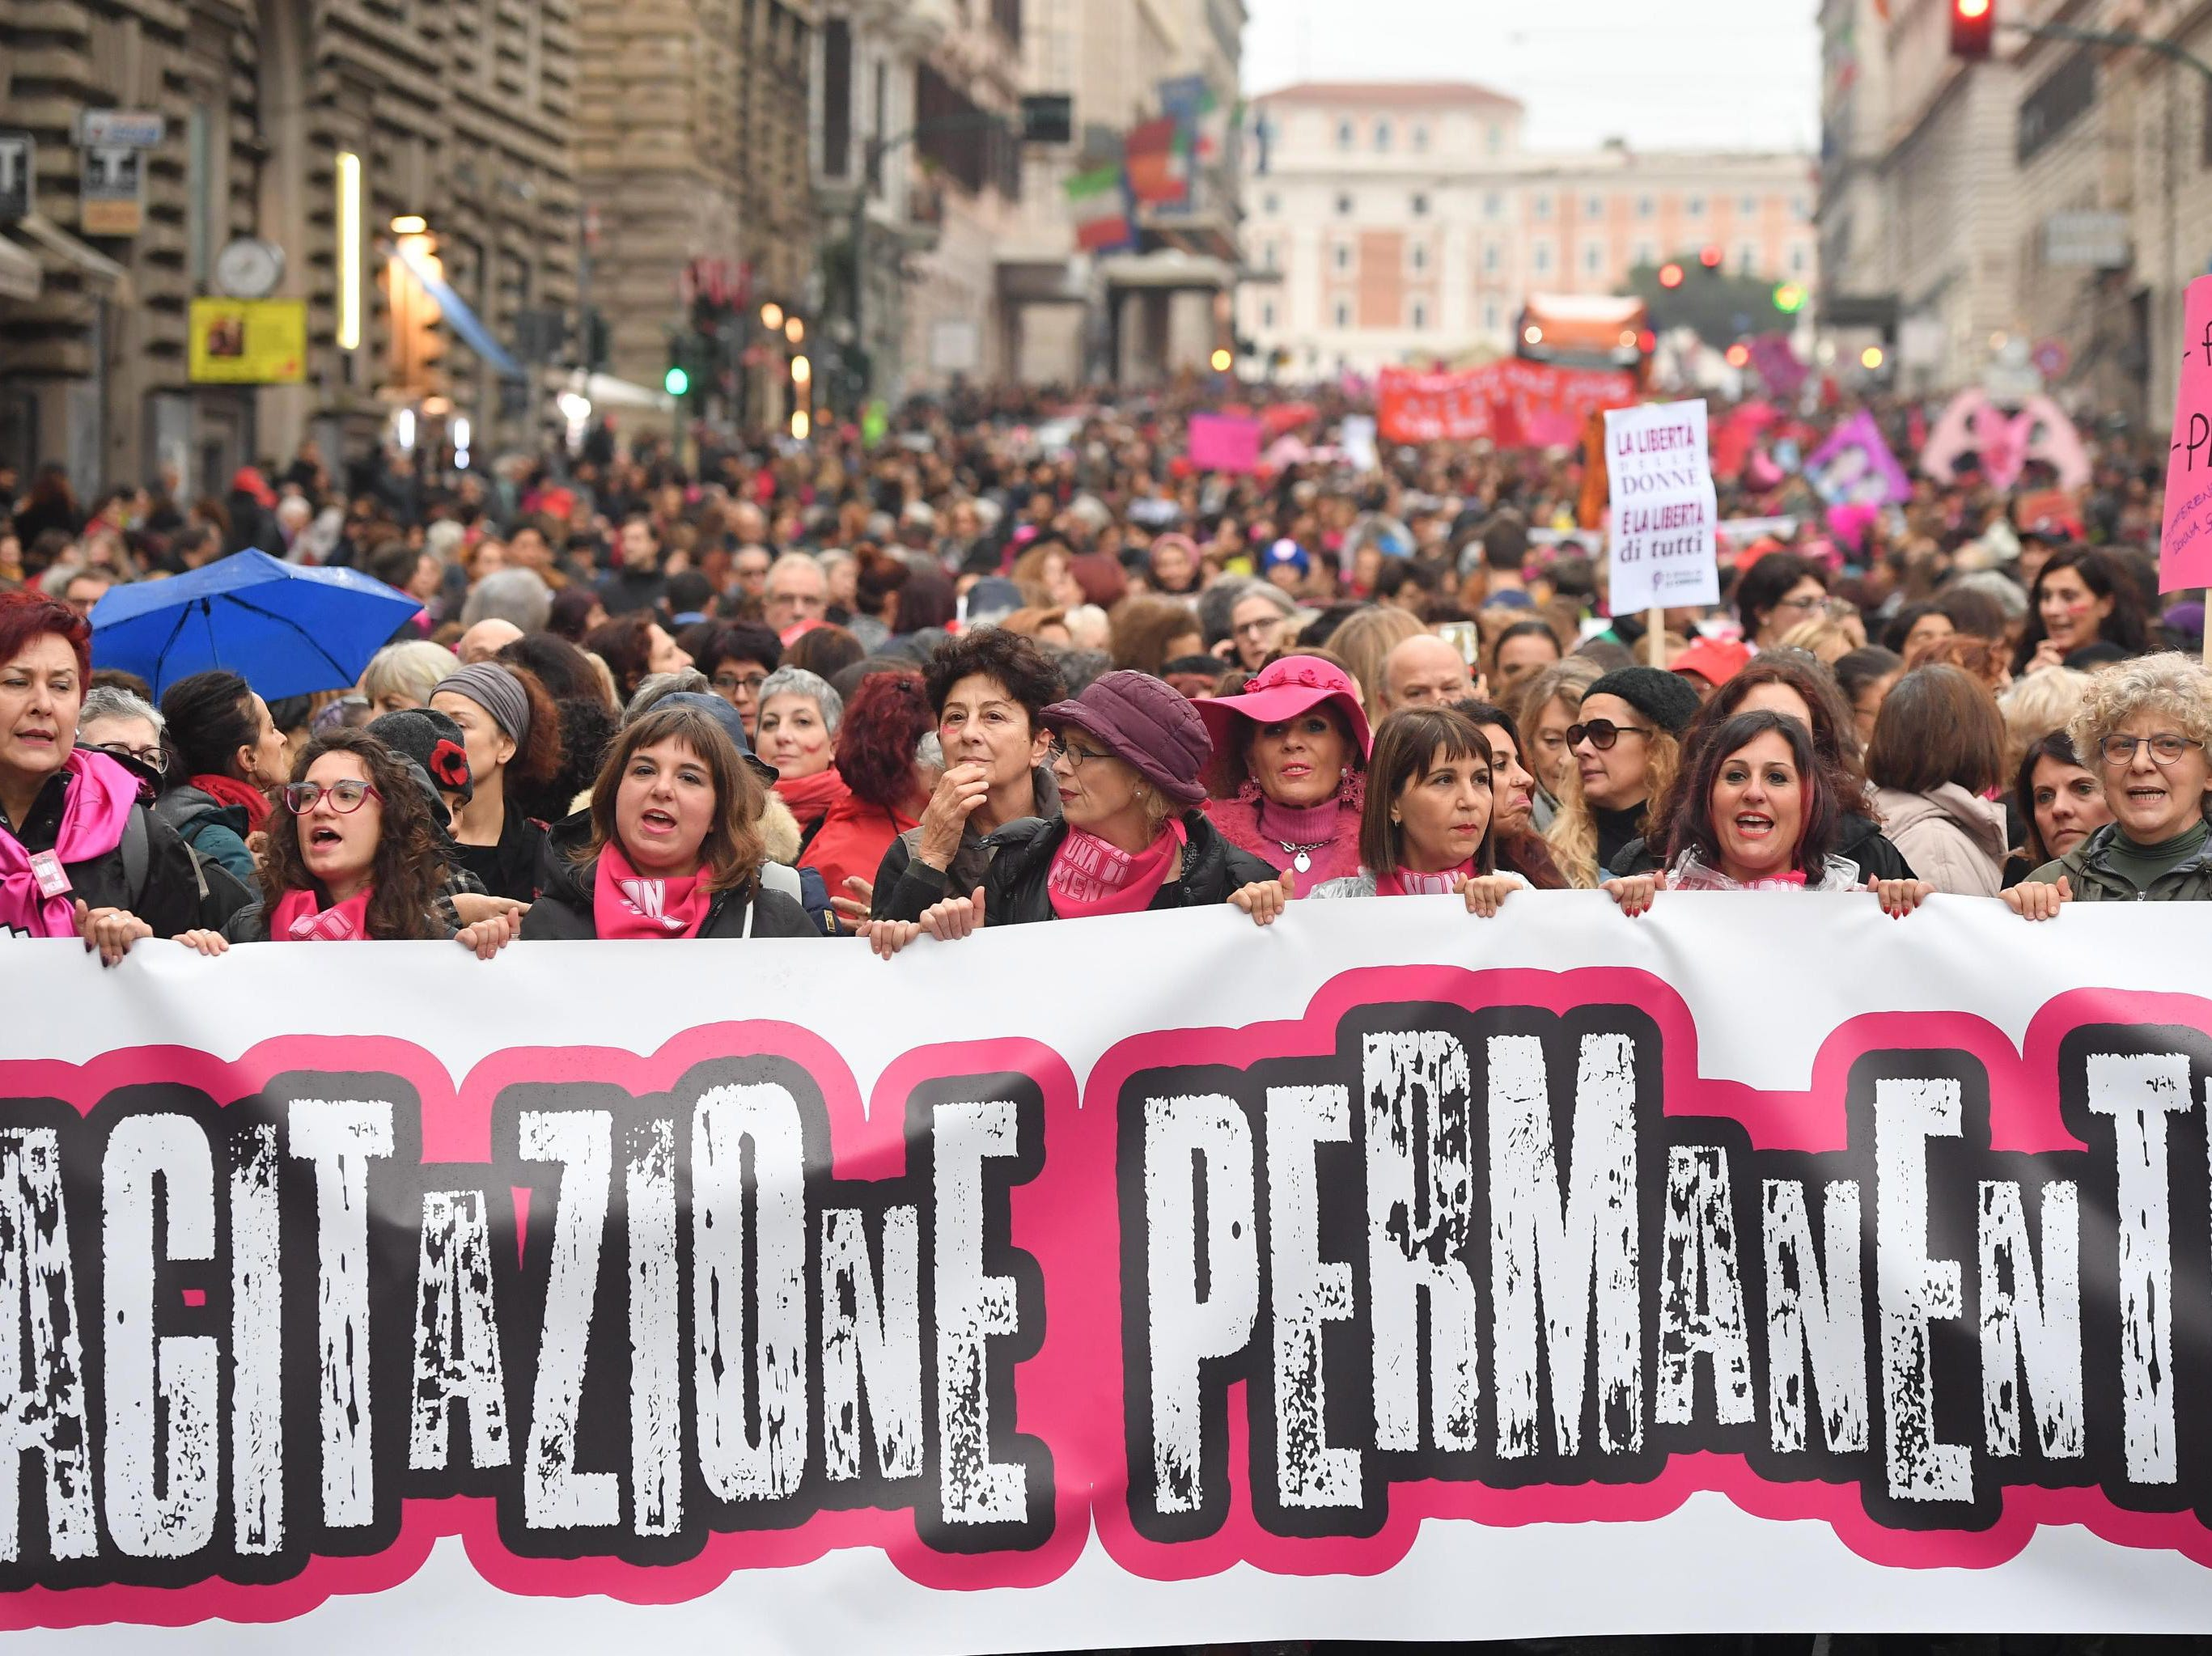 Demonstrators hold a banner reading 'Permanent Agitation,' as they attend a rally on the eve of the International Day for the Elimination of Violence against Women, in Rome, Italy on Nov. 24, 2018.